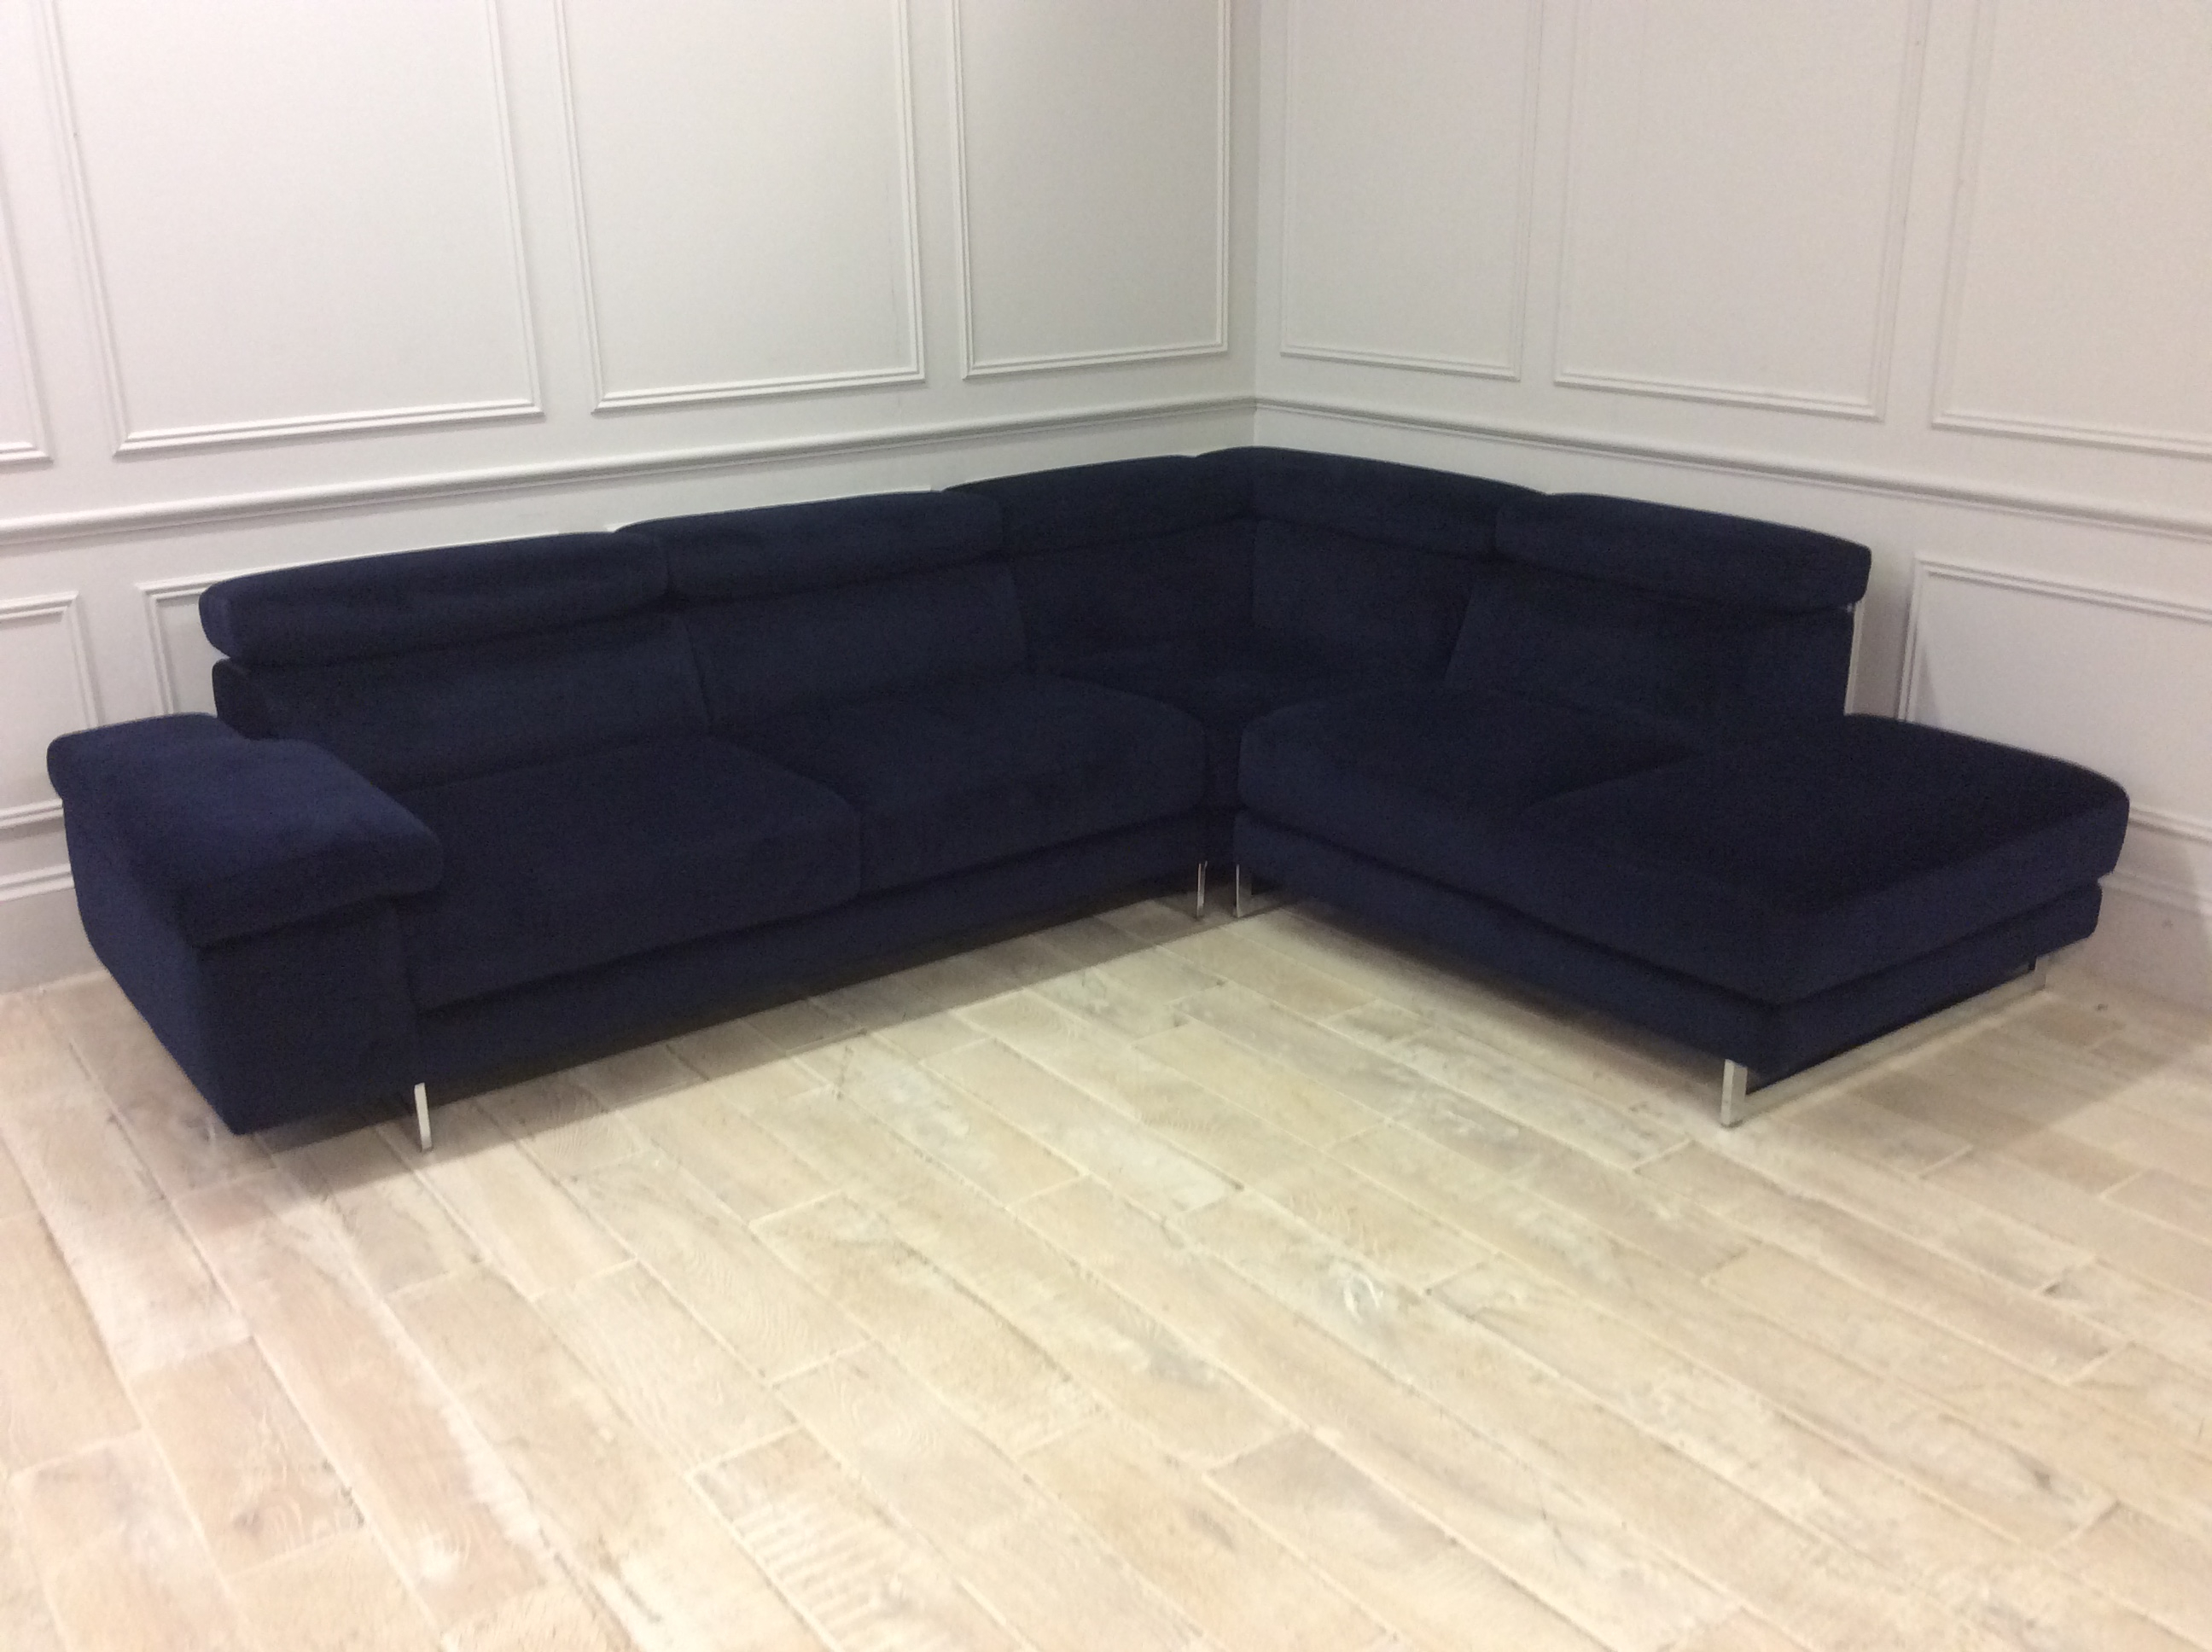 Product photograph showing Milano Chaise Sofa With Adjustable Headrests On Corner - Right 3 Units In Brezza 04